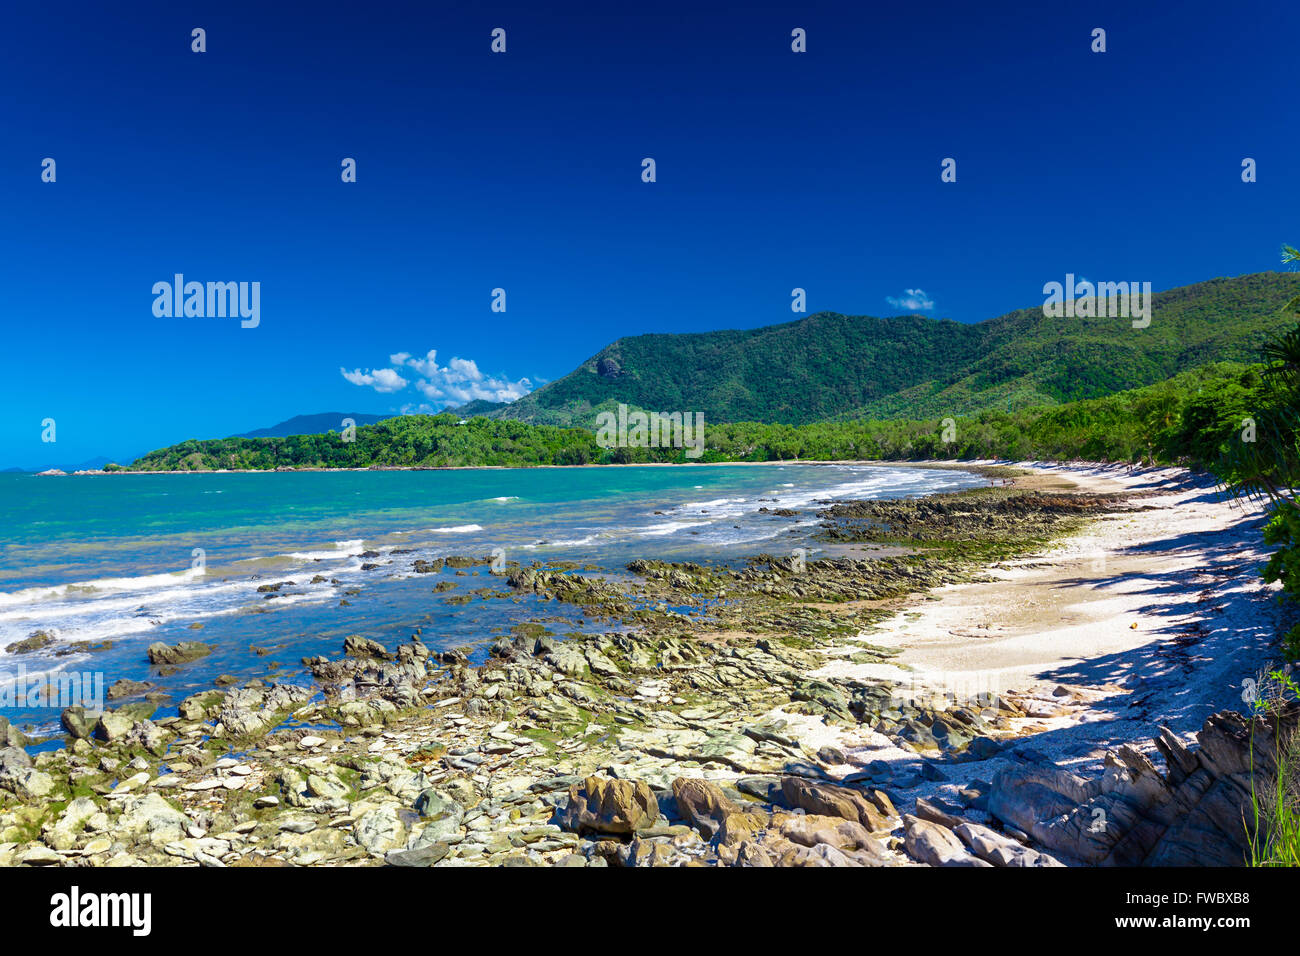 Ellis Beach with rocks near Palm Cove and Cairns, Australia - Stock Image